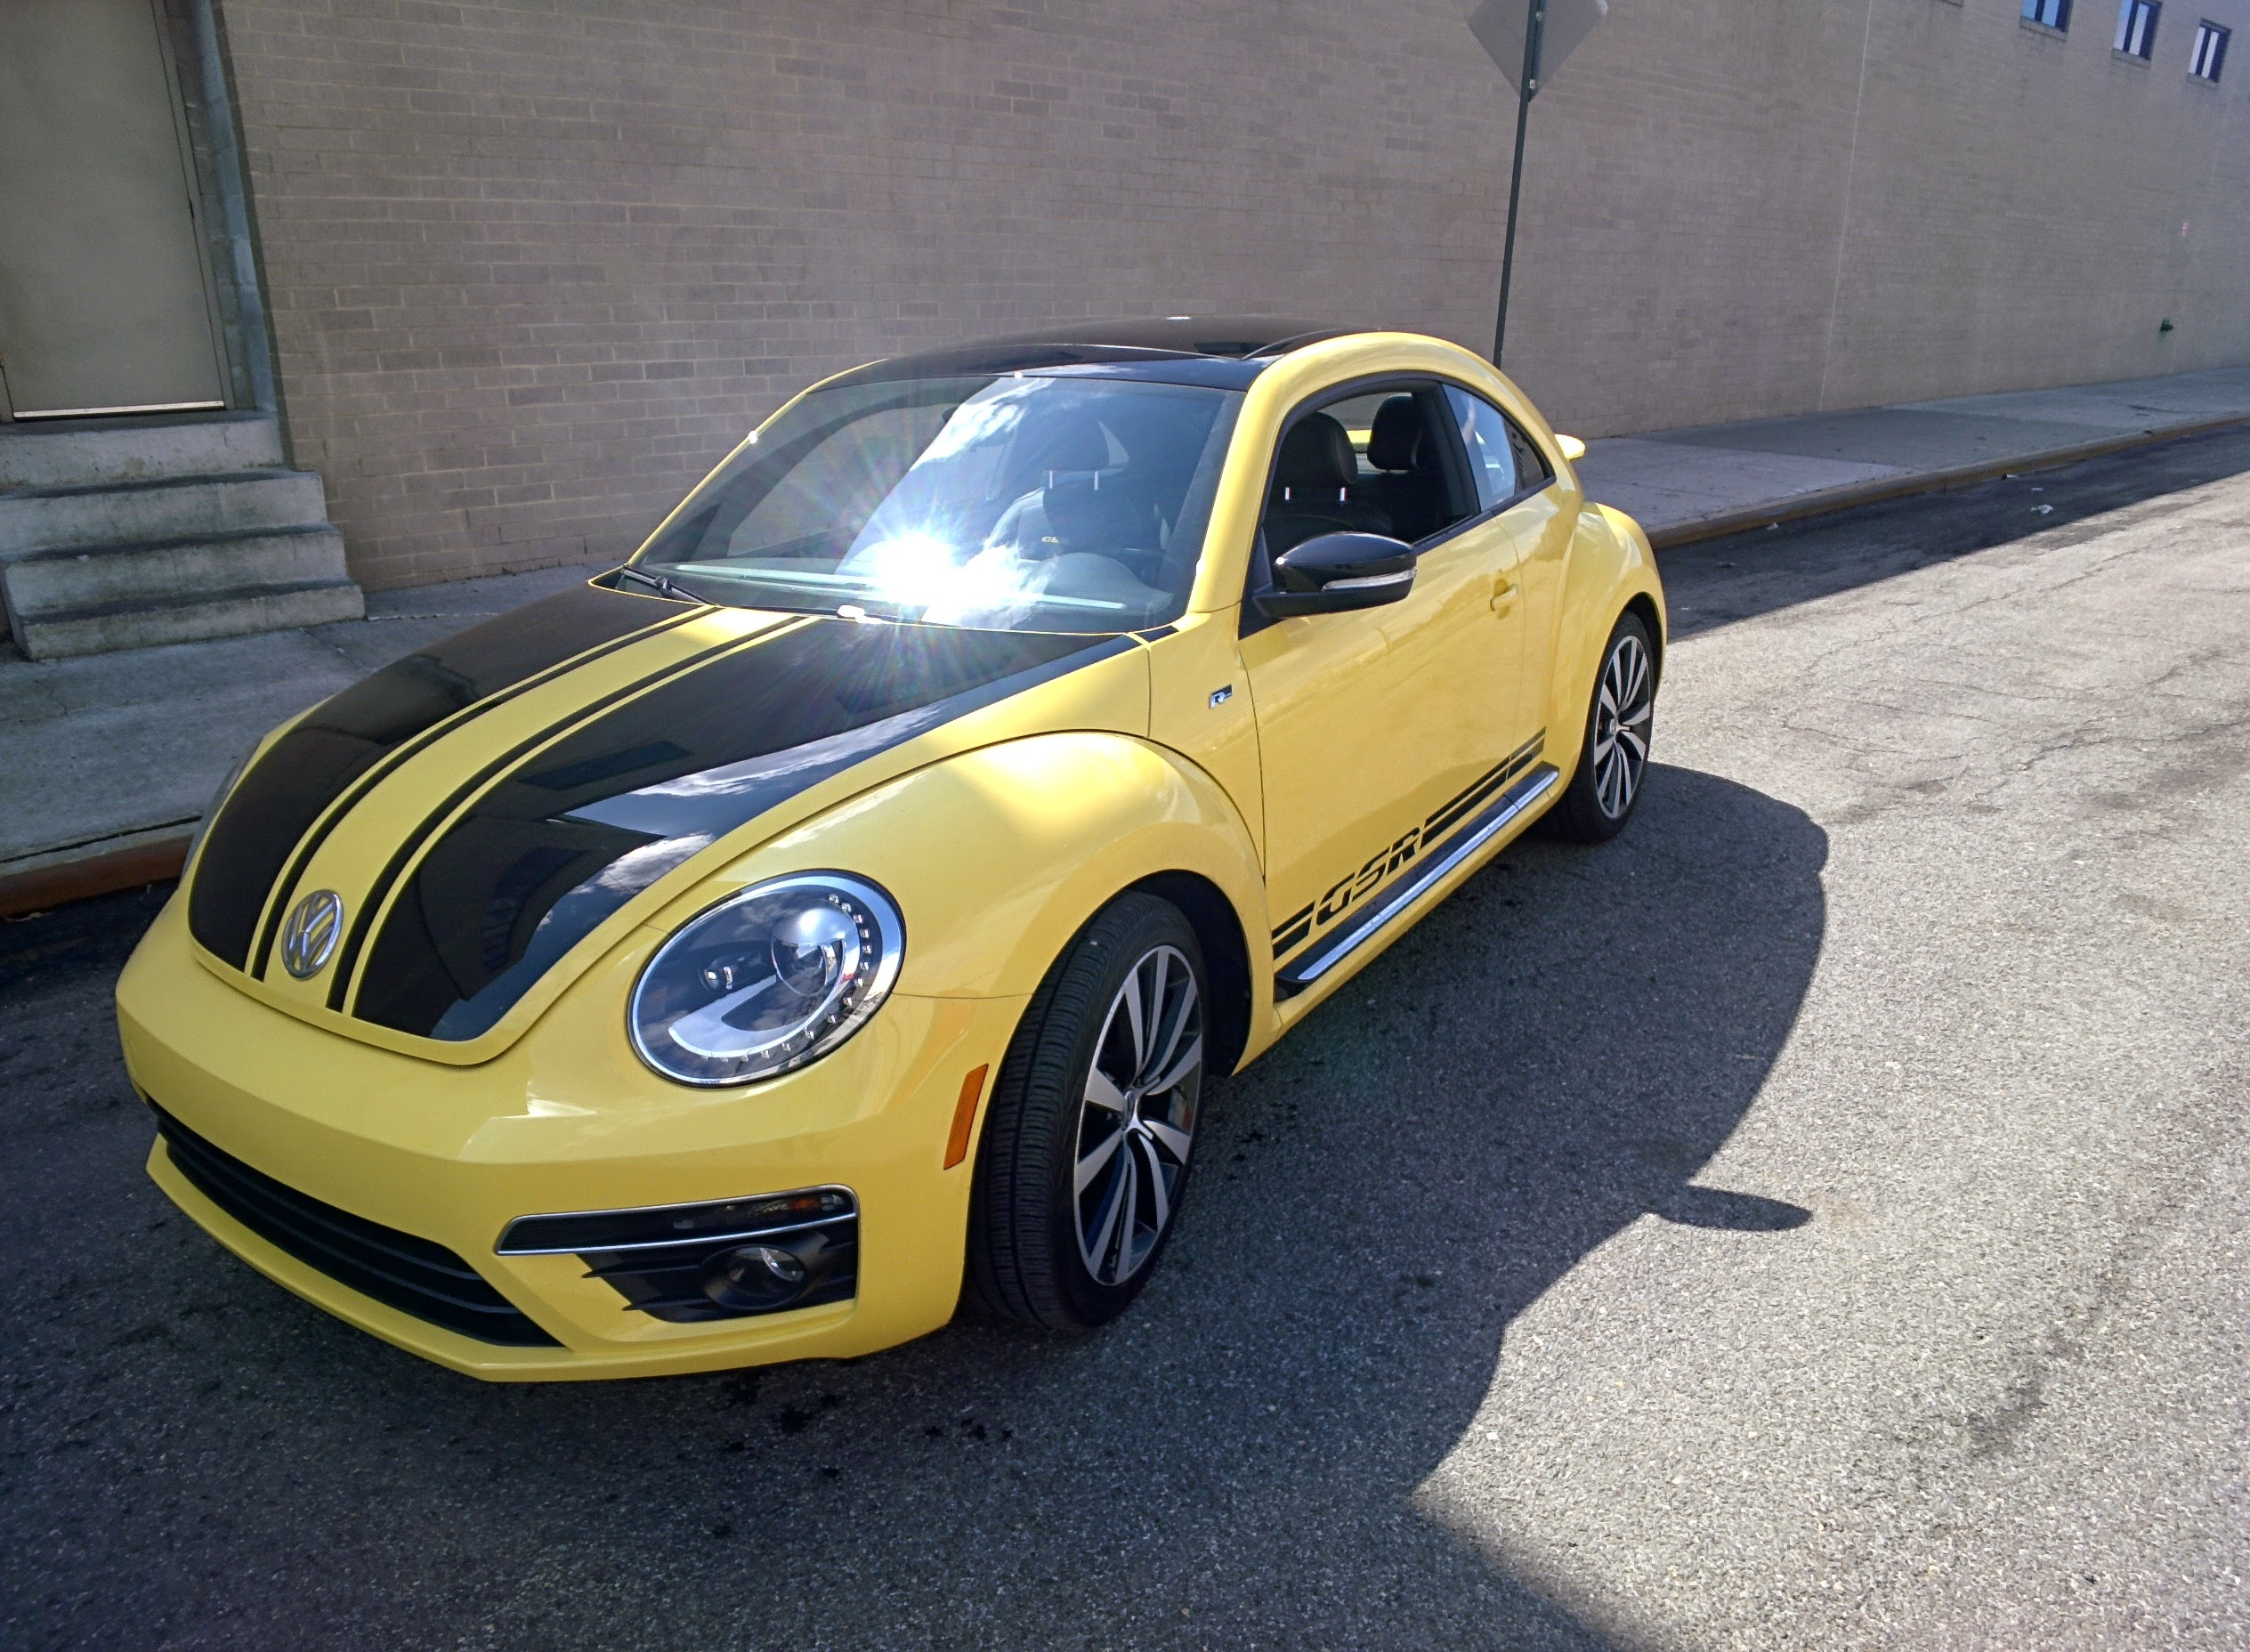 2014 volkswagen beetle gsr time to bring back classic bumblebee nyias g style magazine. Black Bedroom Furniture Sets. Home Design Ideas